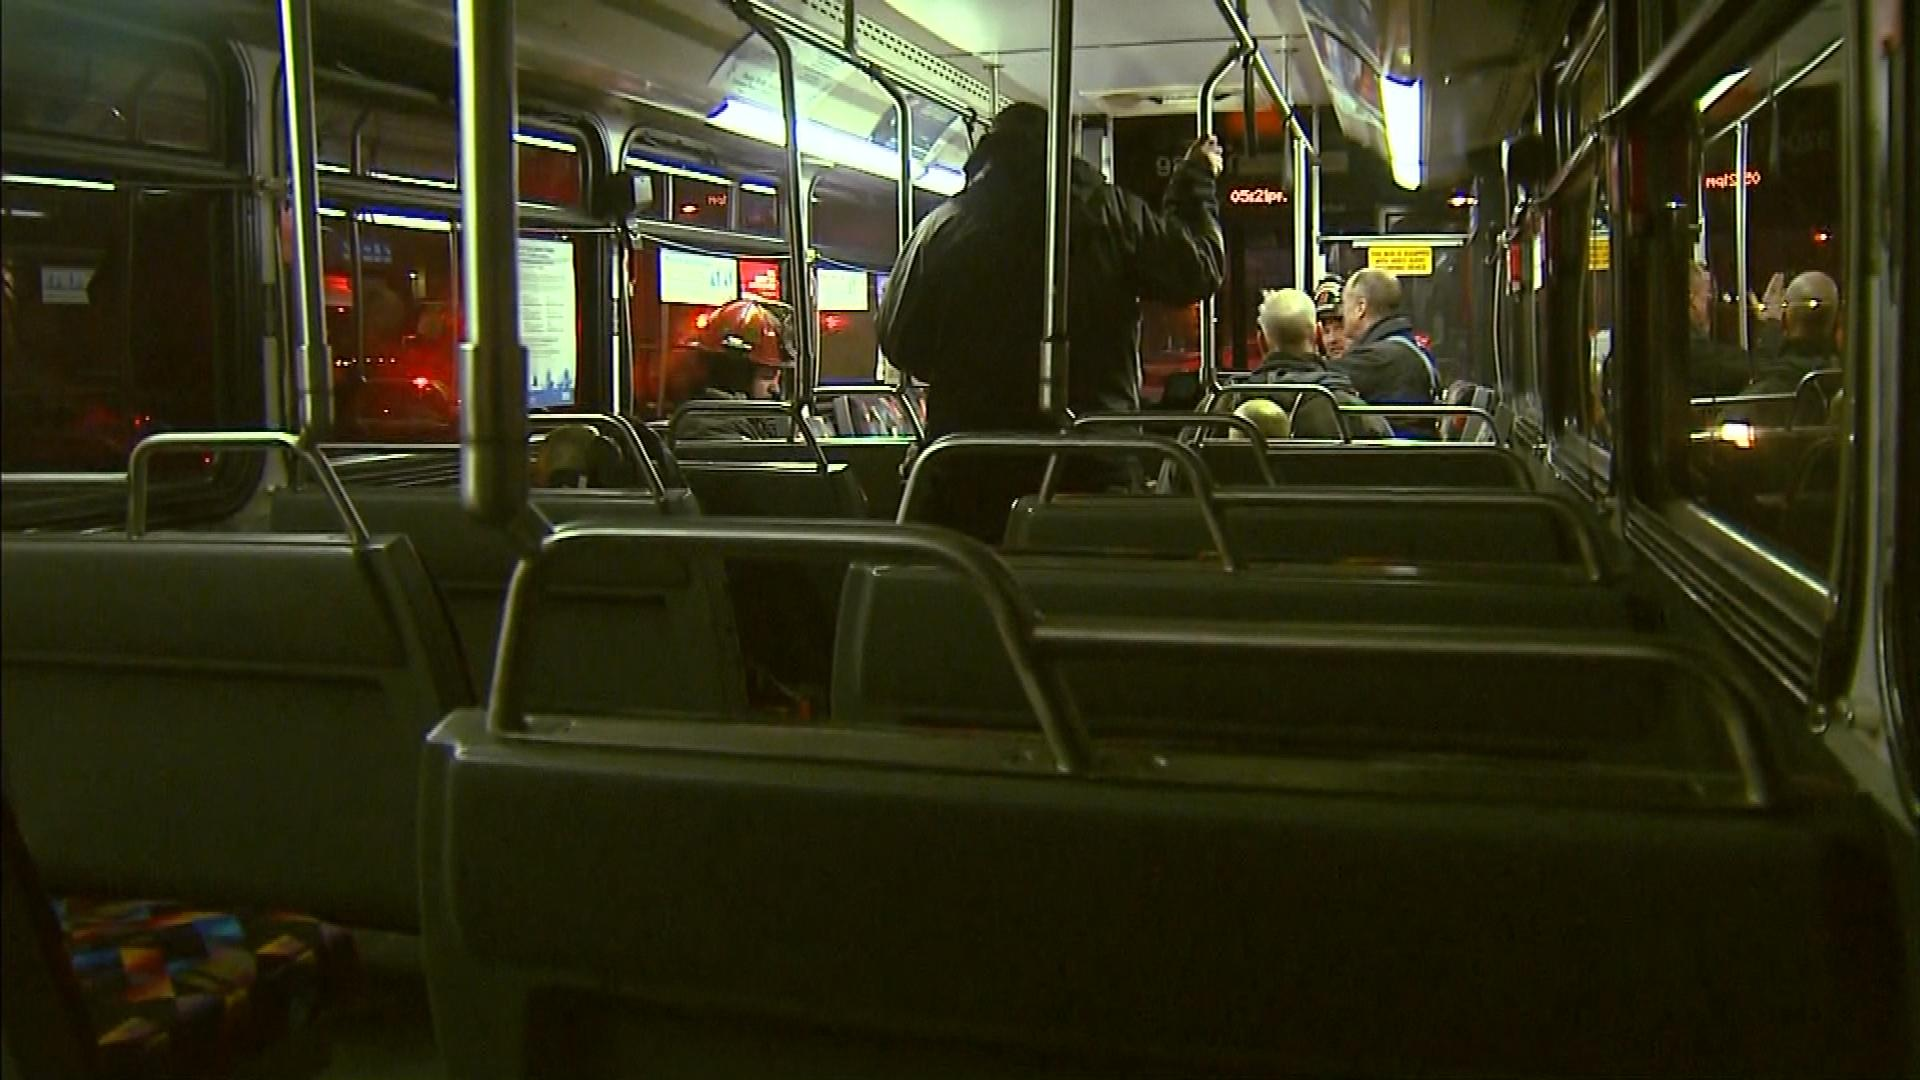 Firefighters warm up in an RTD bus (credit: CBS)